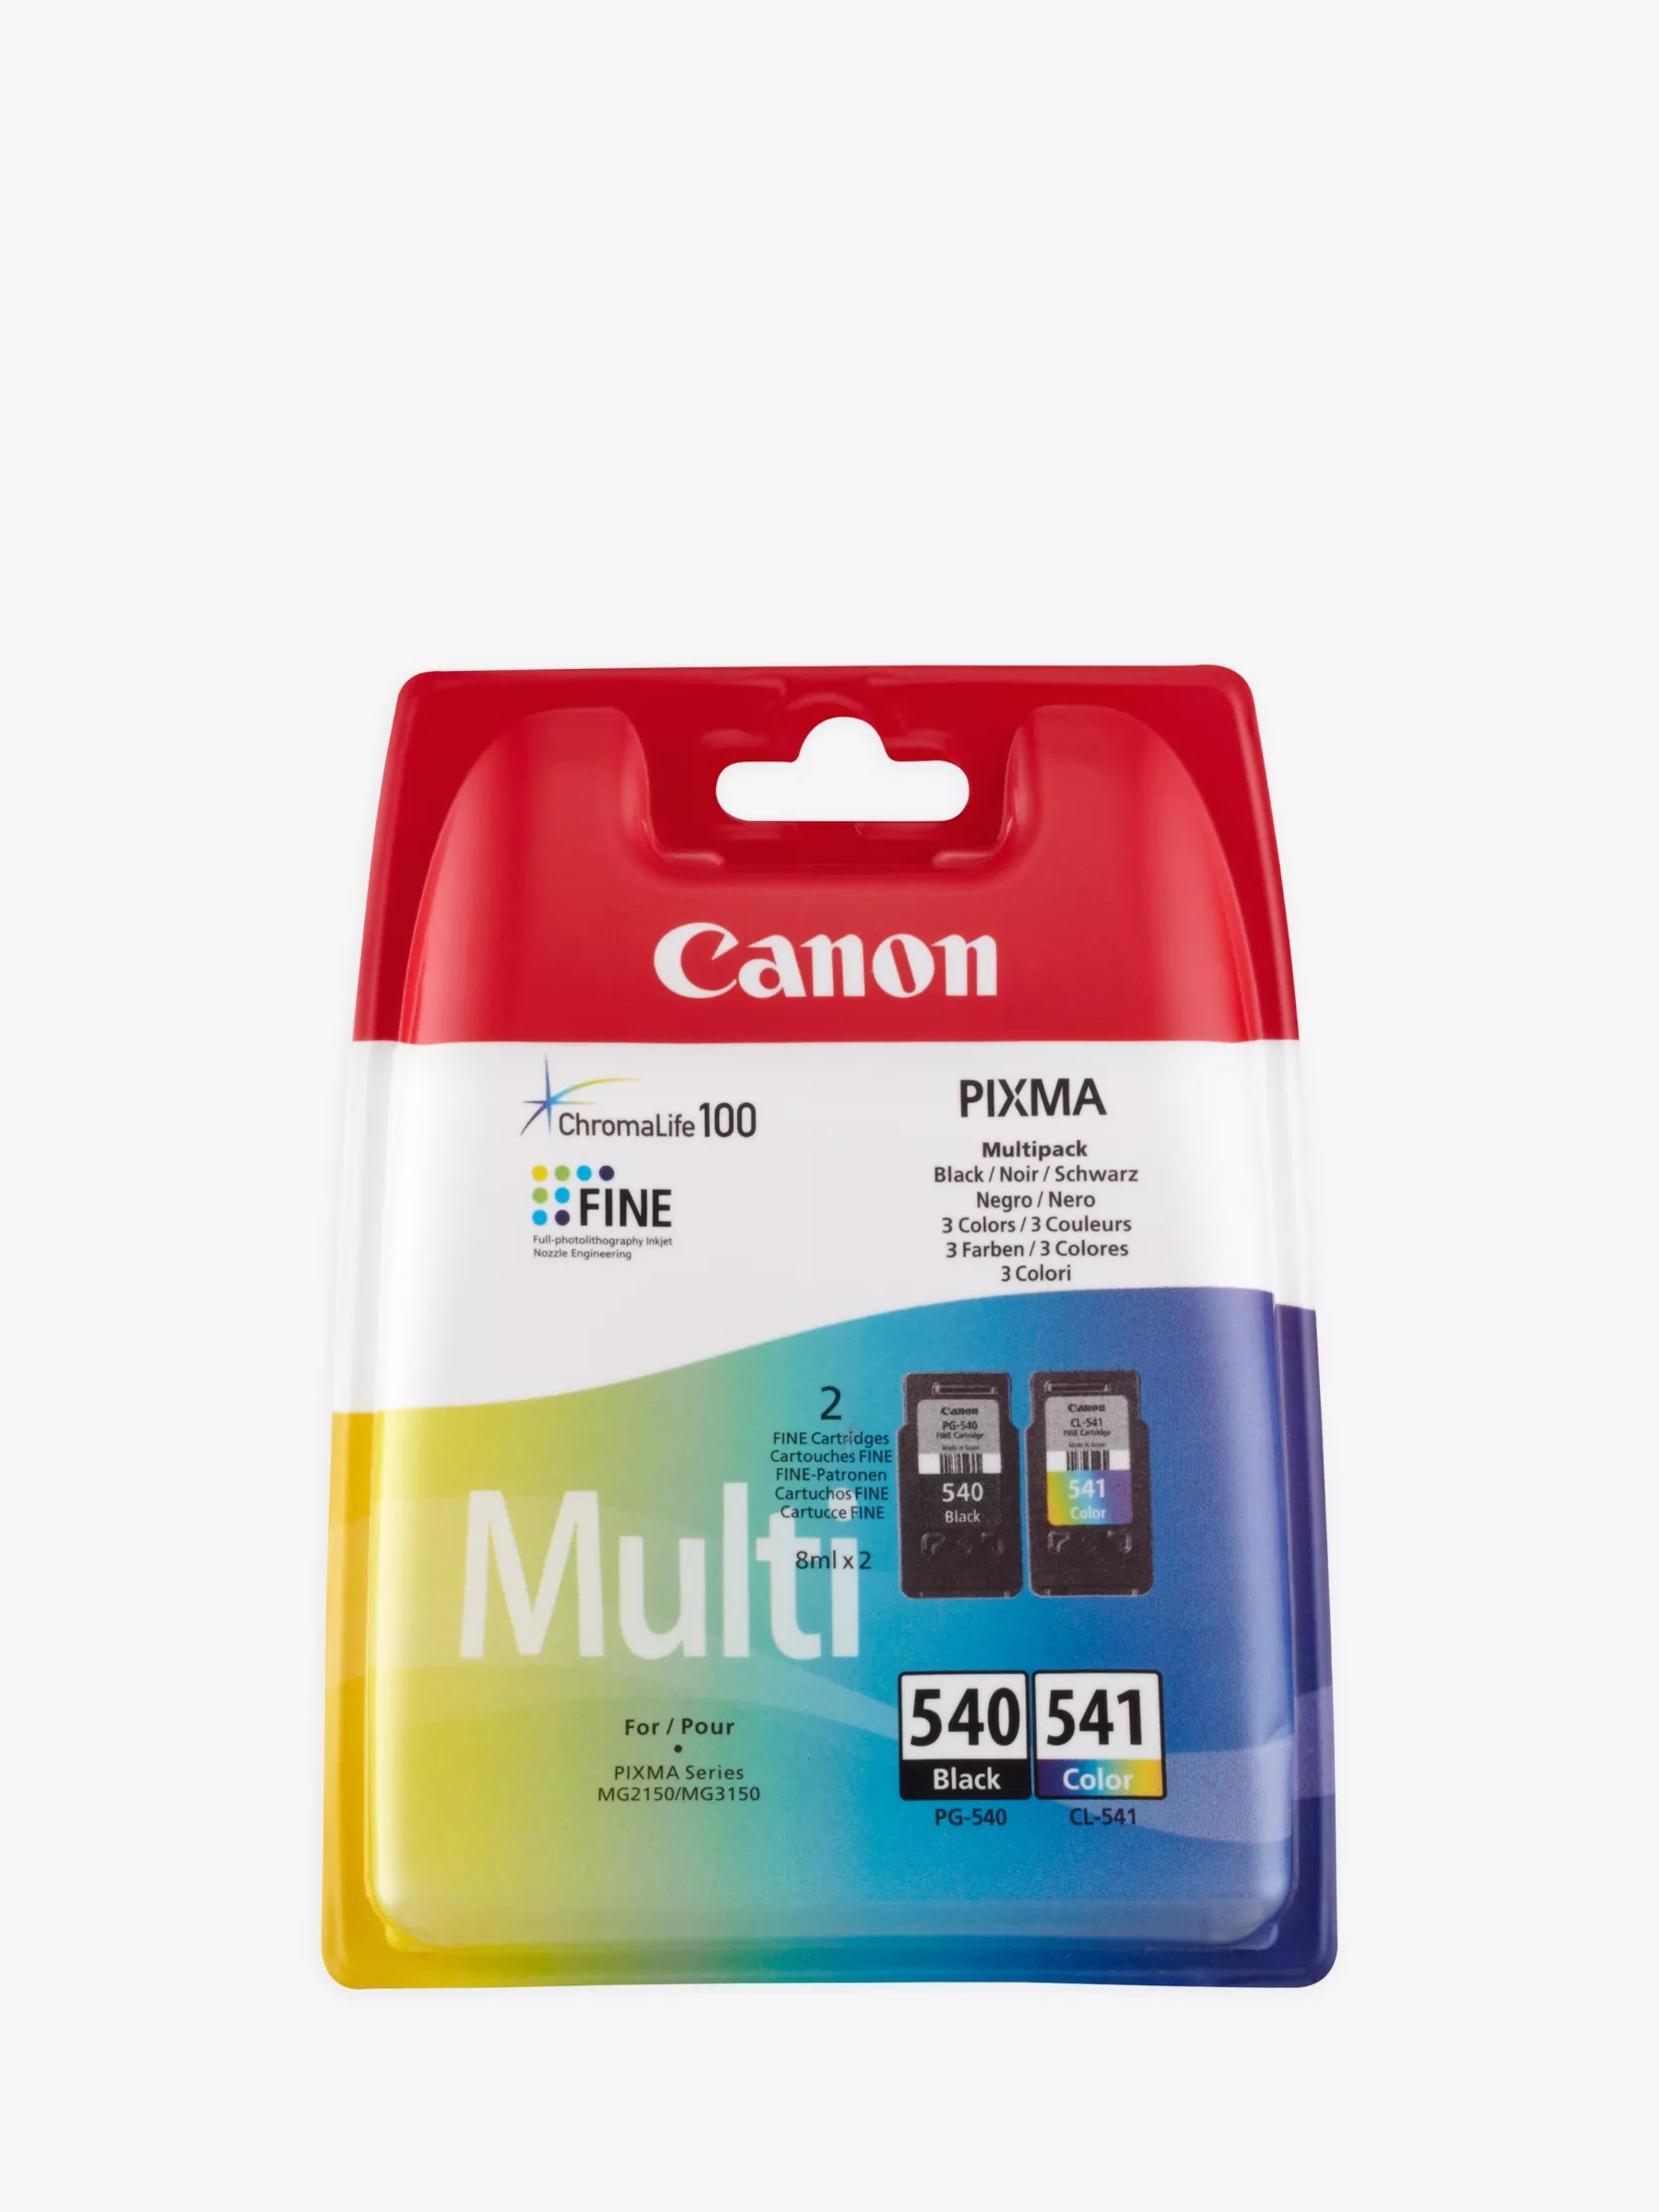 Canon Mg3650 Canon Pixma Mg3650 Printer Copy Scan All In One Usb Inks